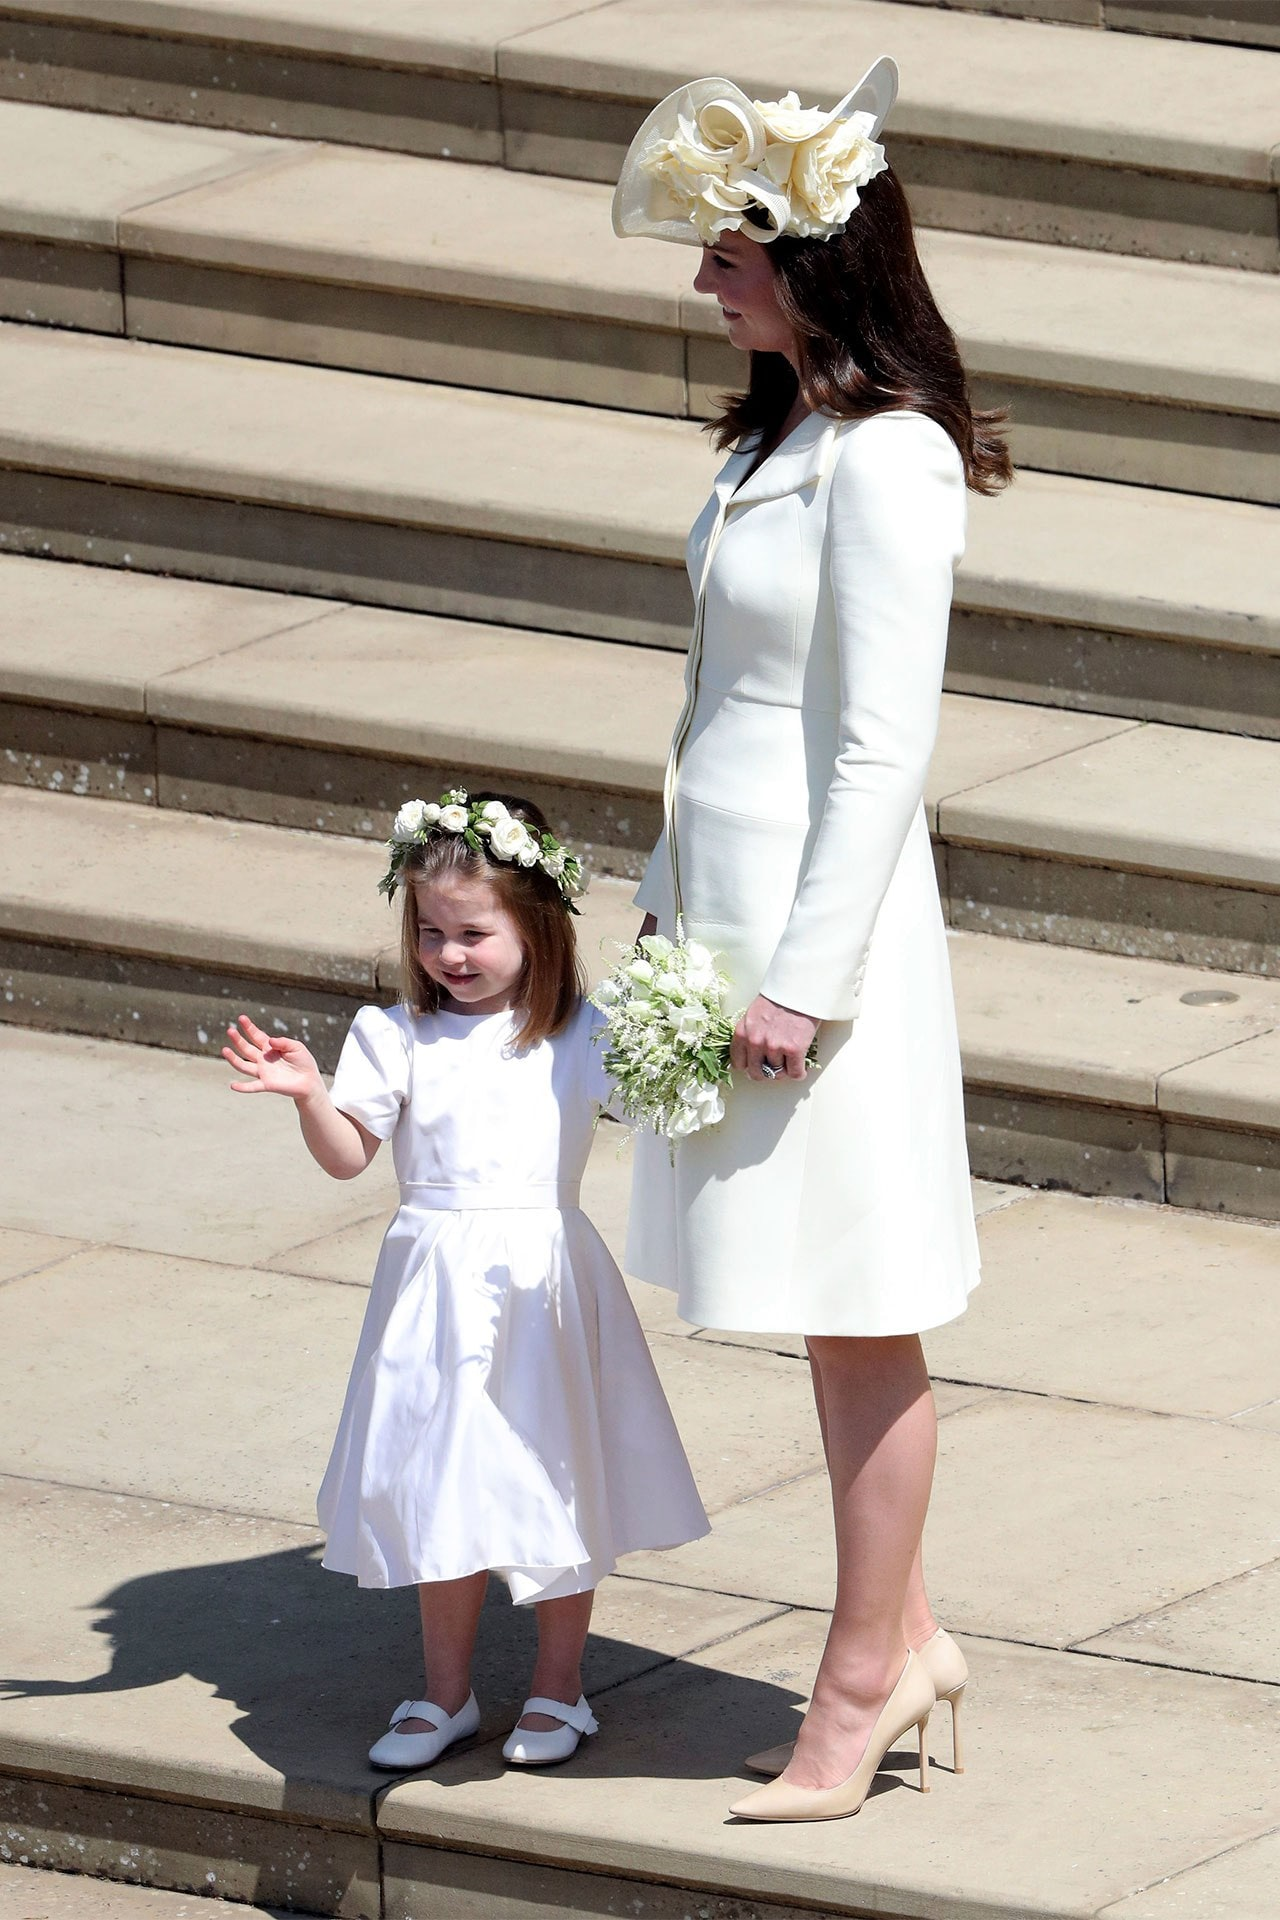 ac526d816f9 Kate Middleton re-wears her Alexander McQueen coat dress for the fourth  time to the royal wedding